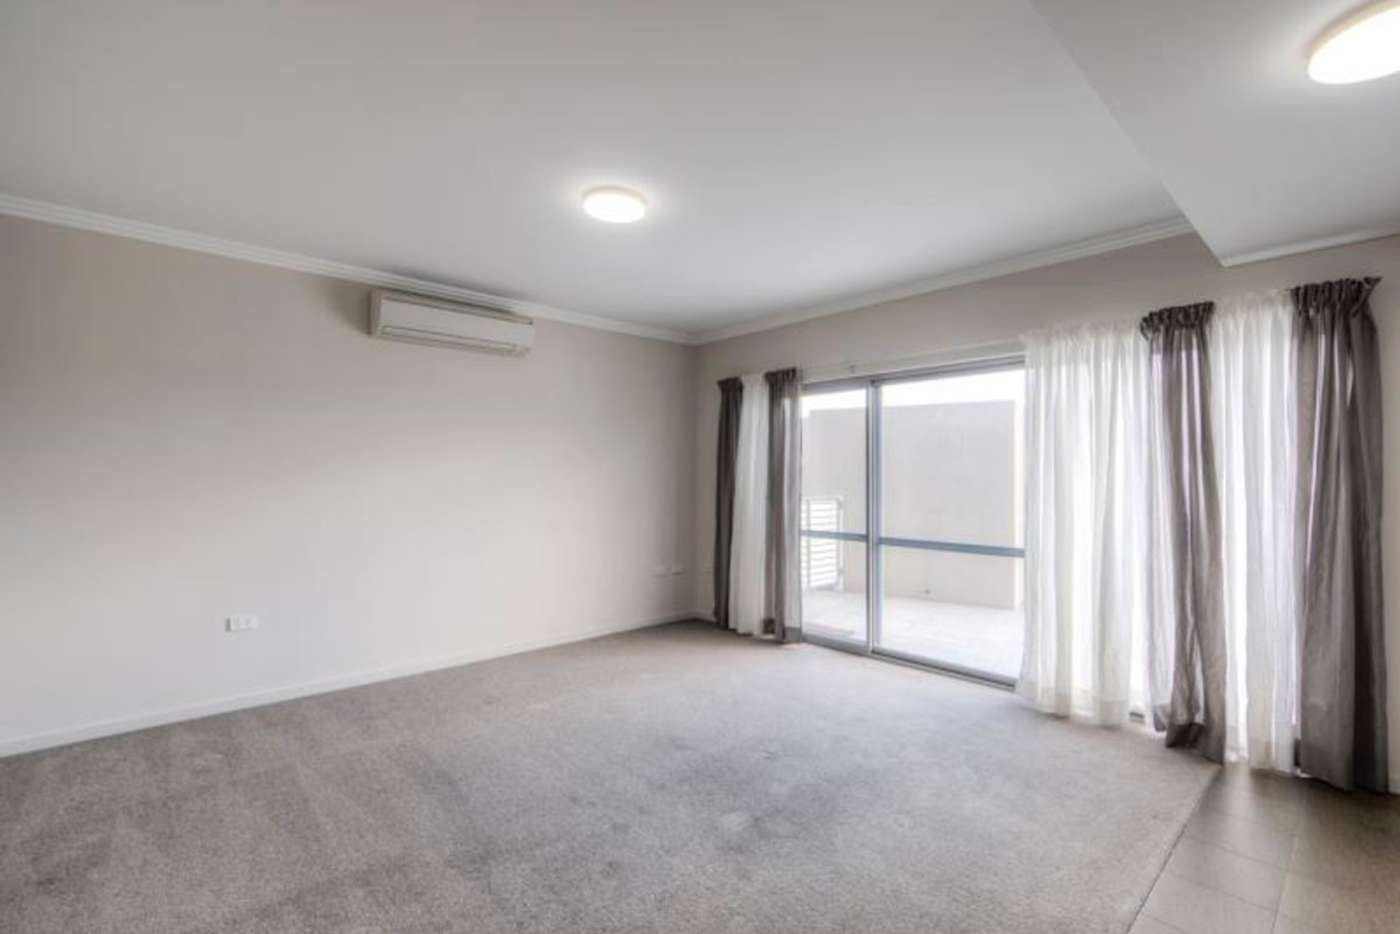 Fifth view of Homely apartment listing, 1/26 Little Walcott Street, North Perth WA 6006